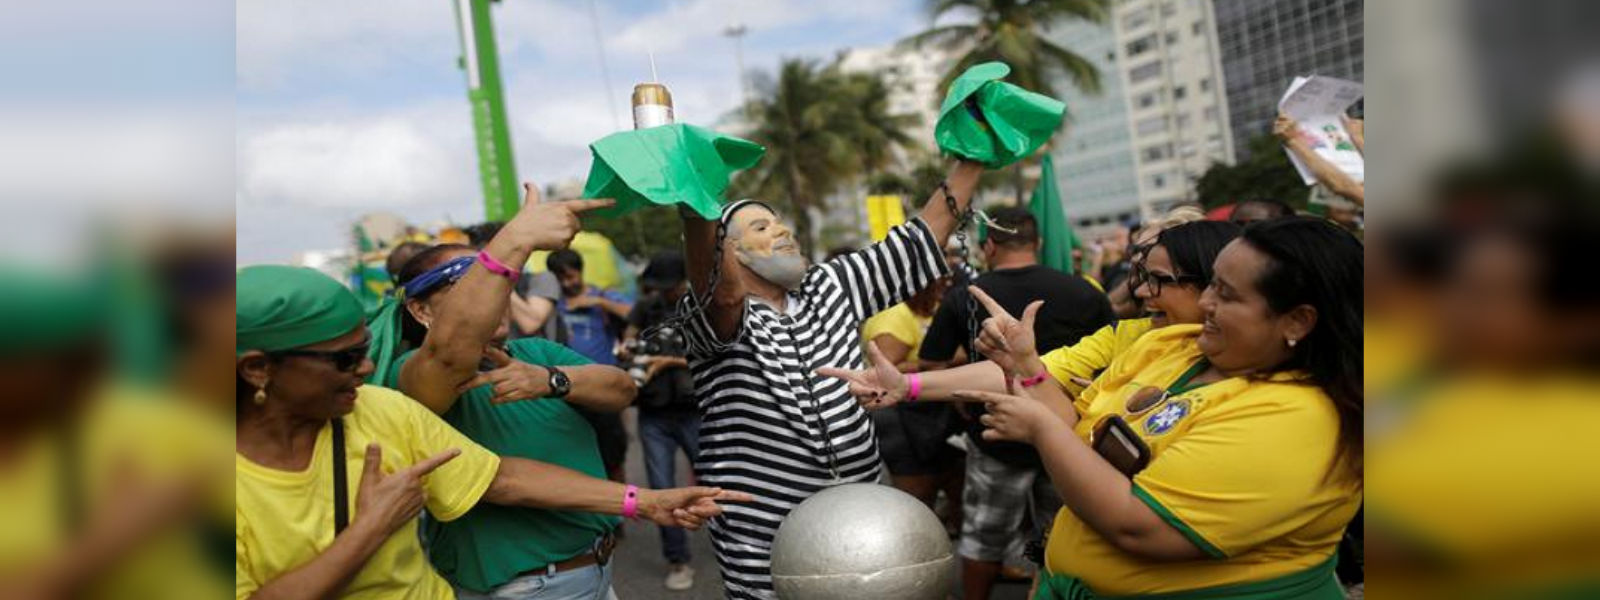 Brazilians demonstrate to pressure Congress to approve Bolsonaro's reforms